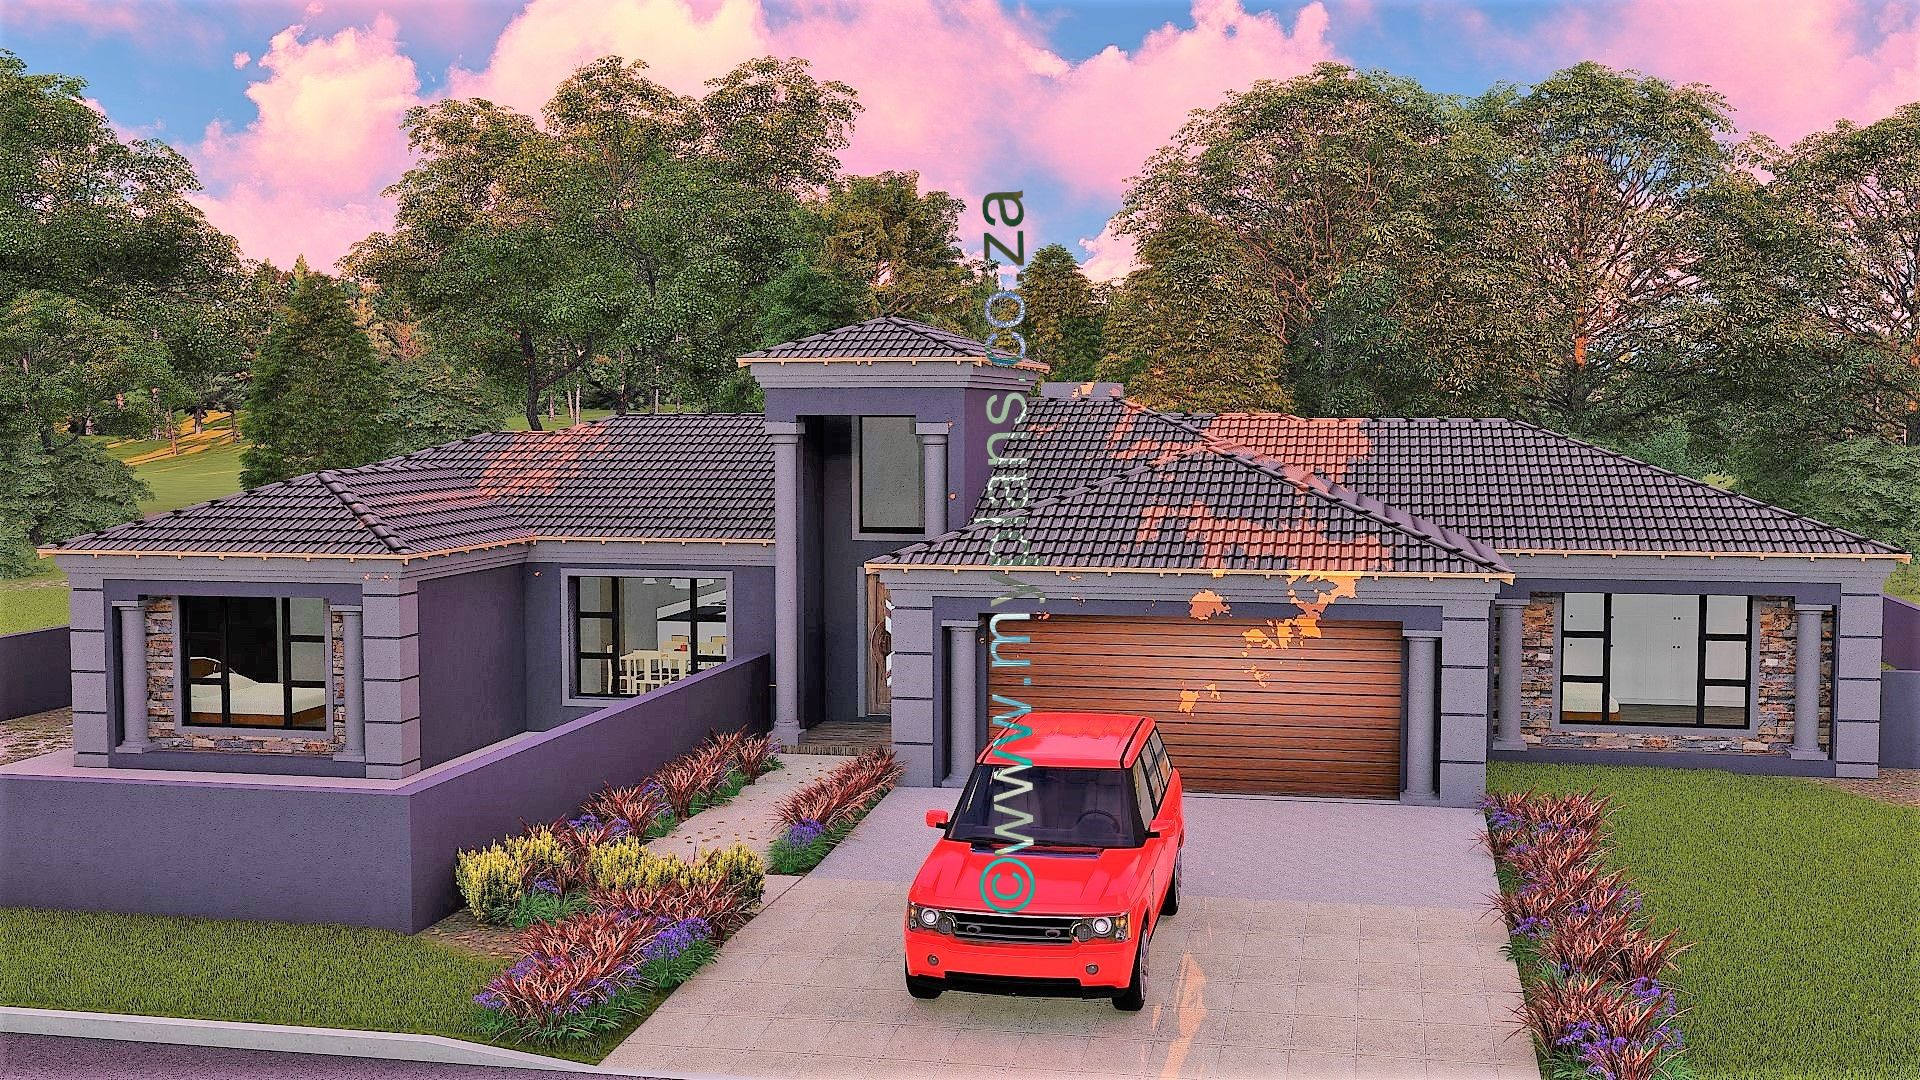 My Building Plans South Africa Bedroom House Plans 4 Bedroom House Plans 4 Bedroom House